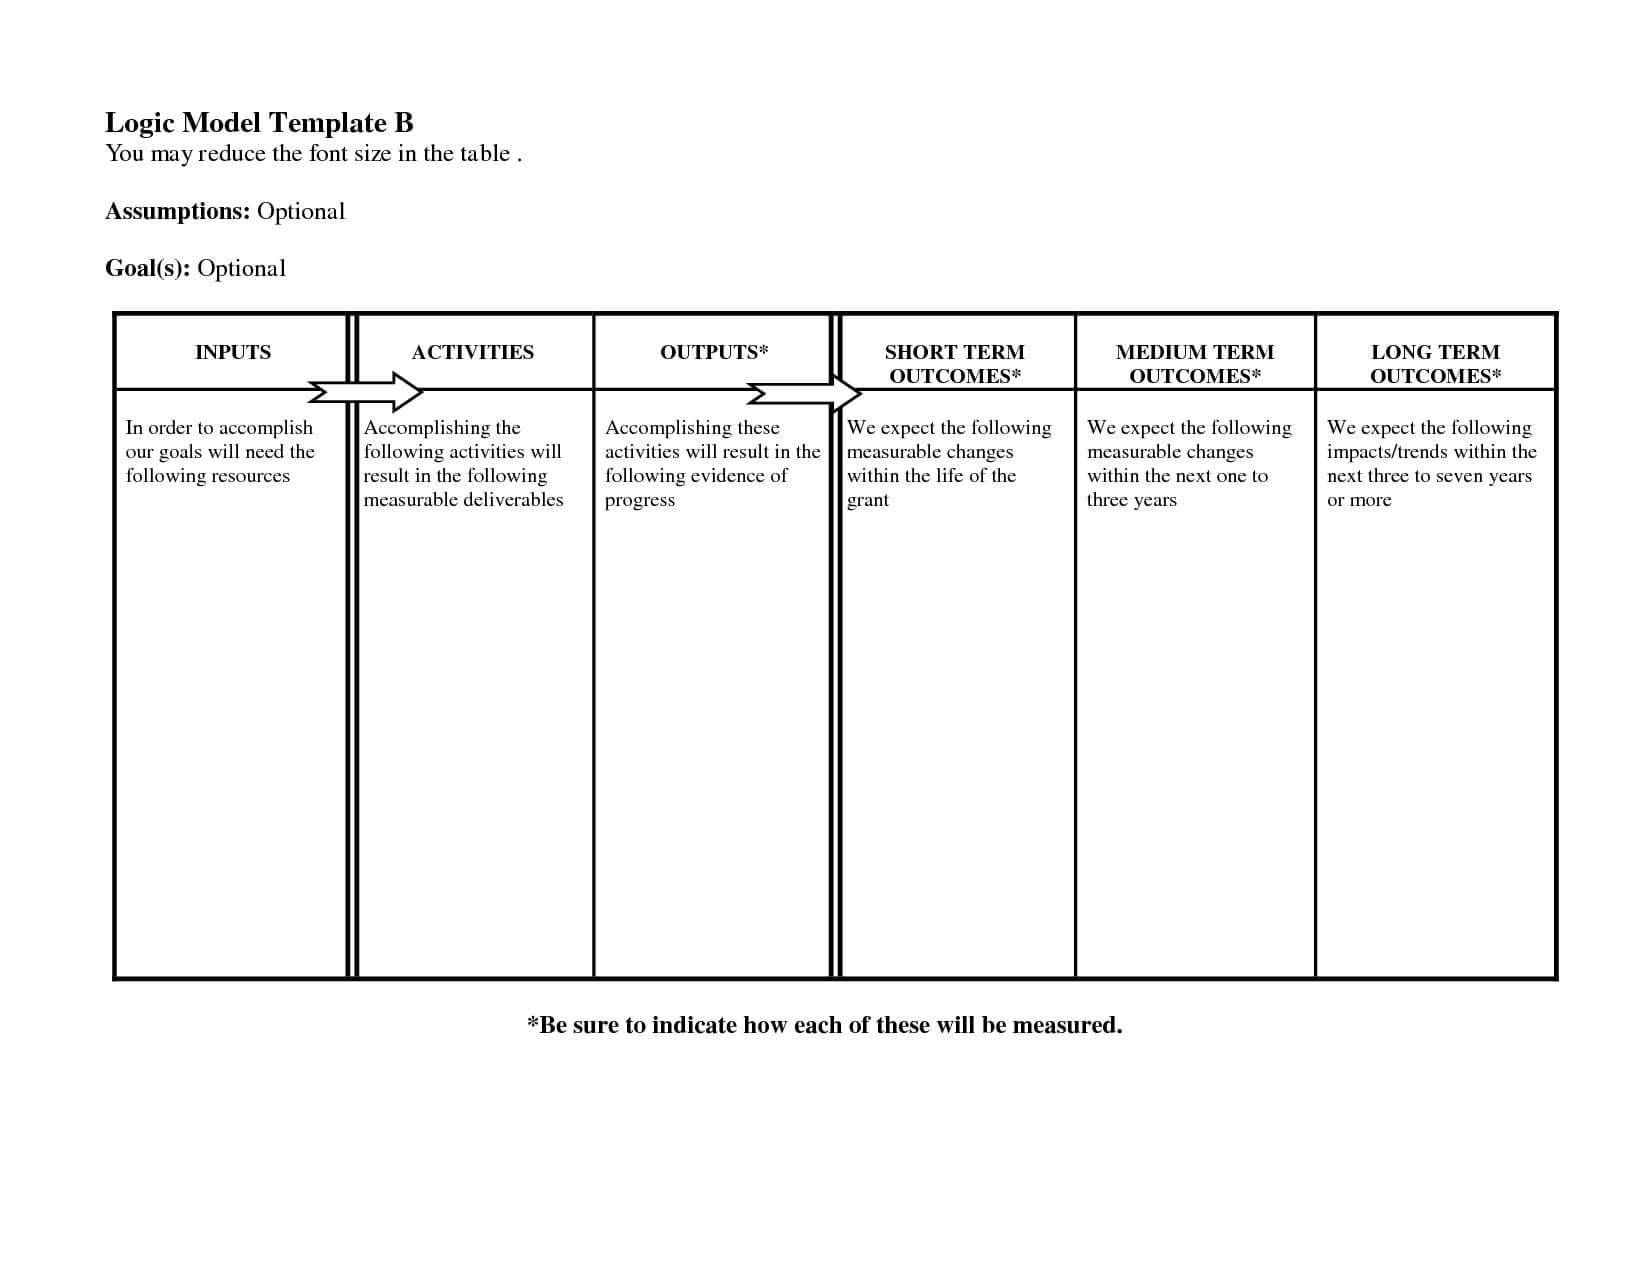 Logic Model Template | E Commercewordpress Throughout Logic Model Template Microsoft Word